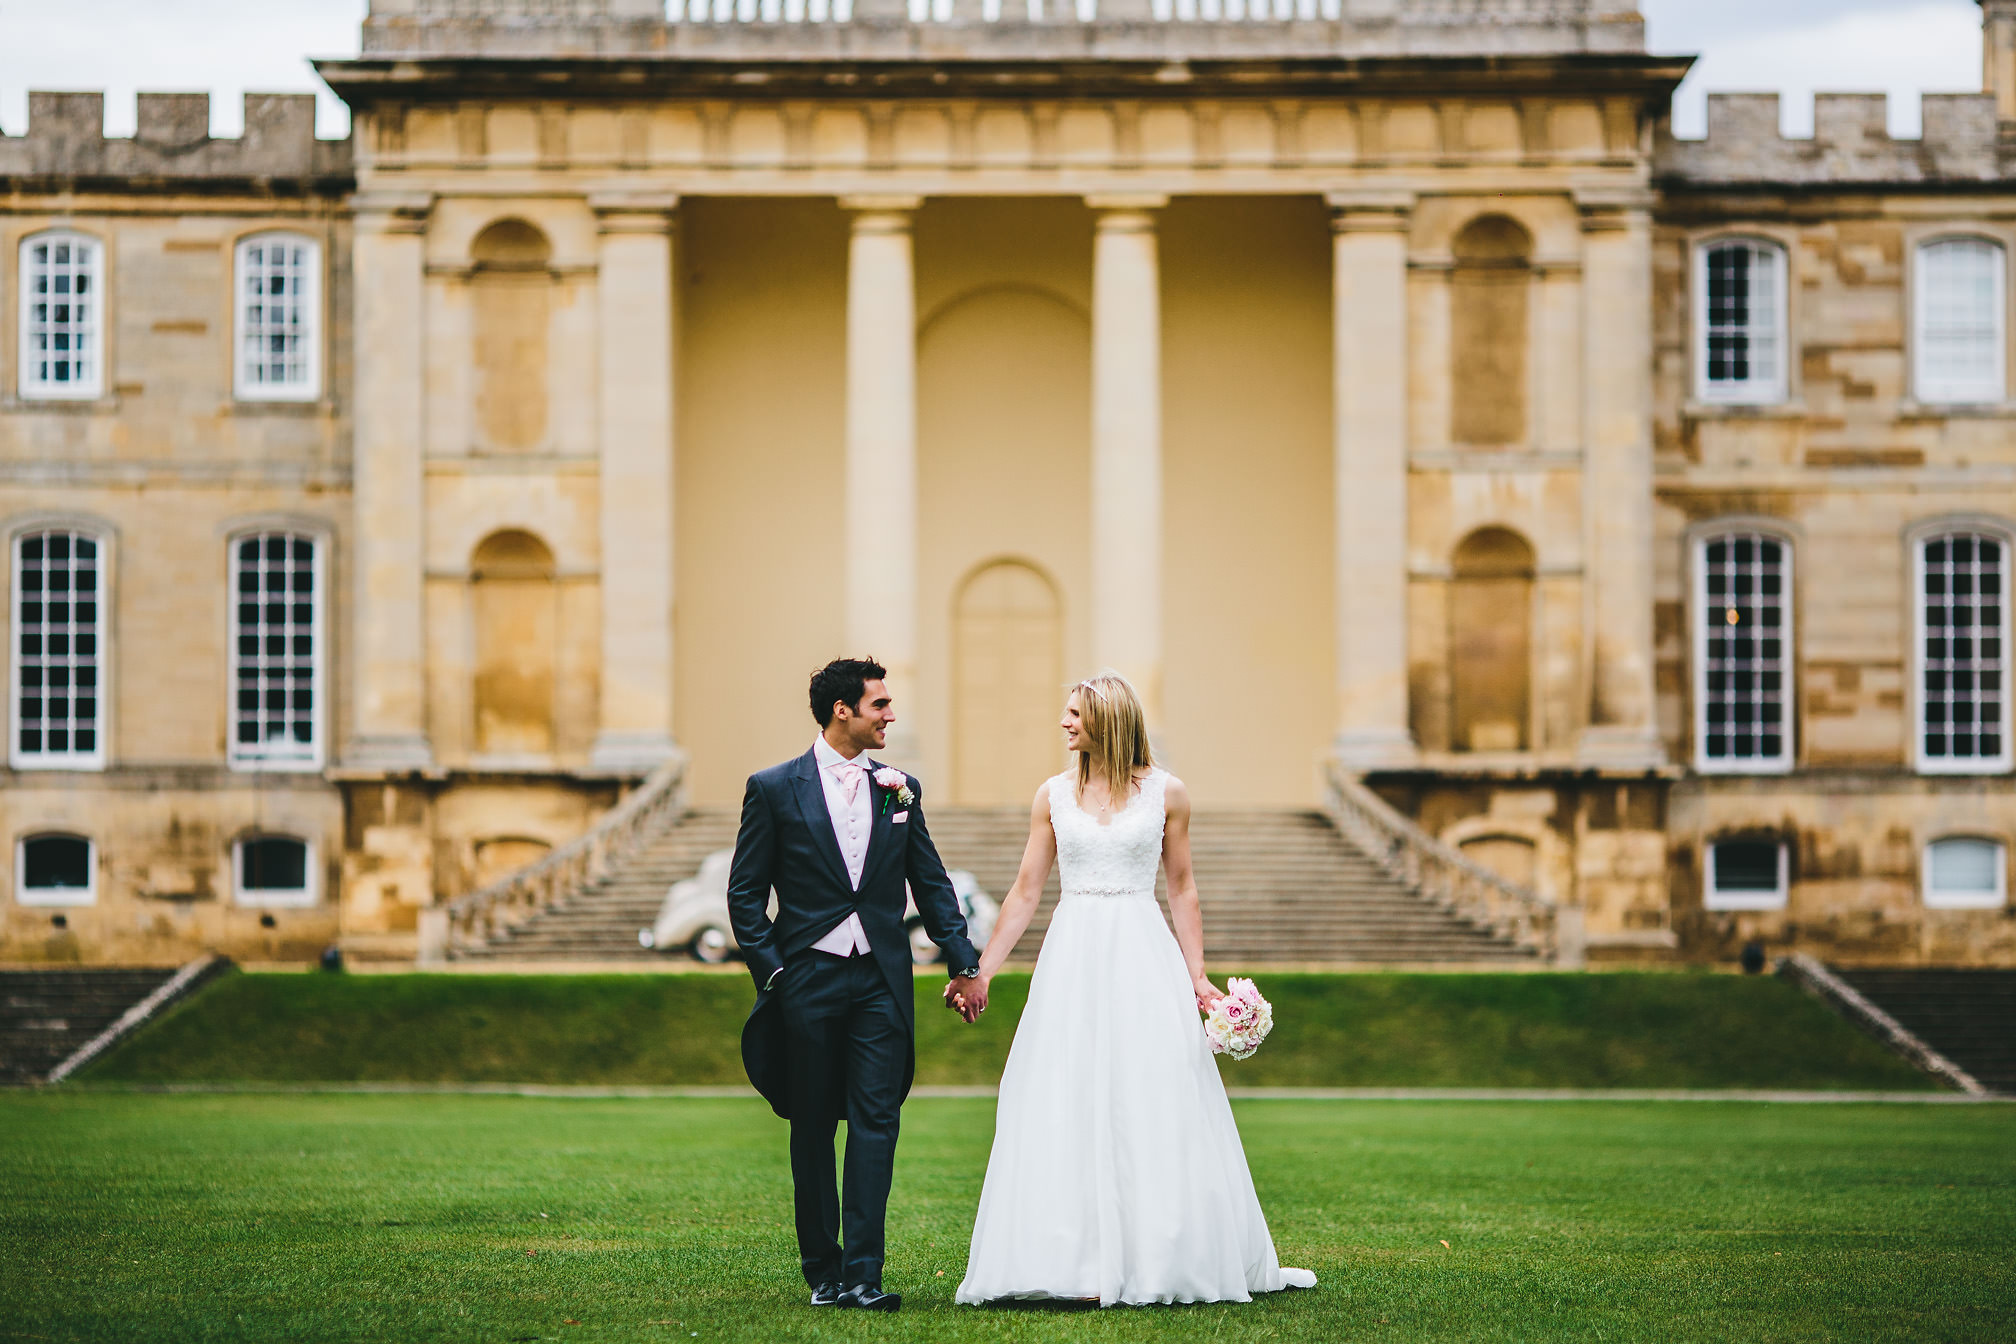 Newly married couple walking at Kimbolton Castle